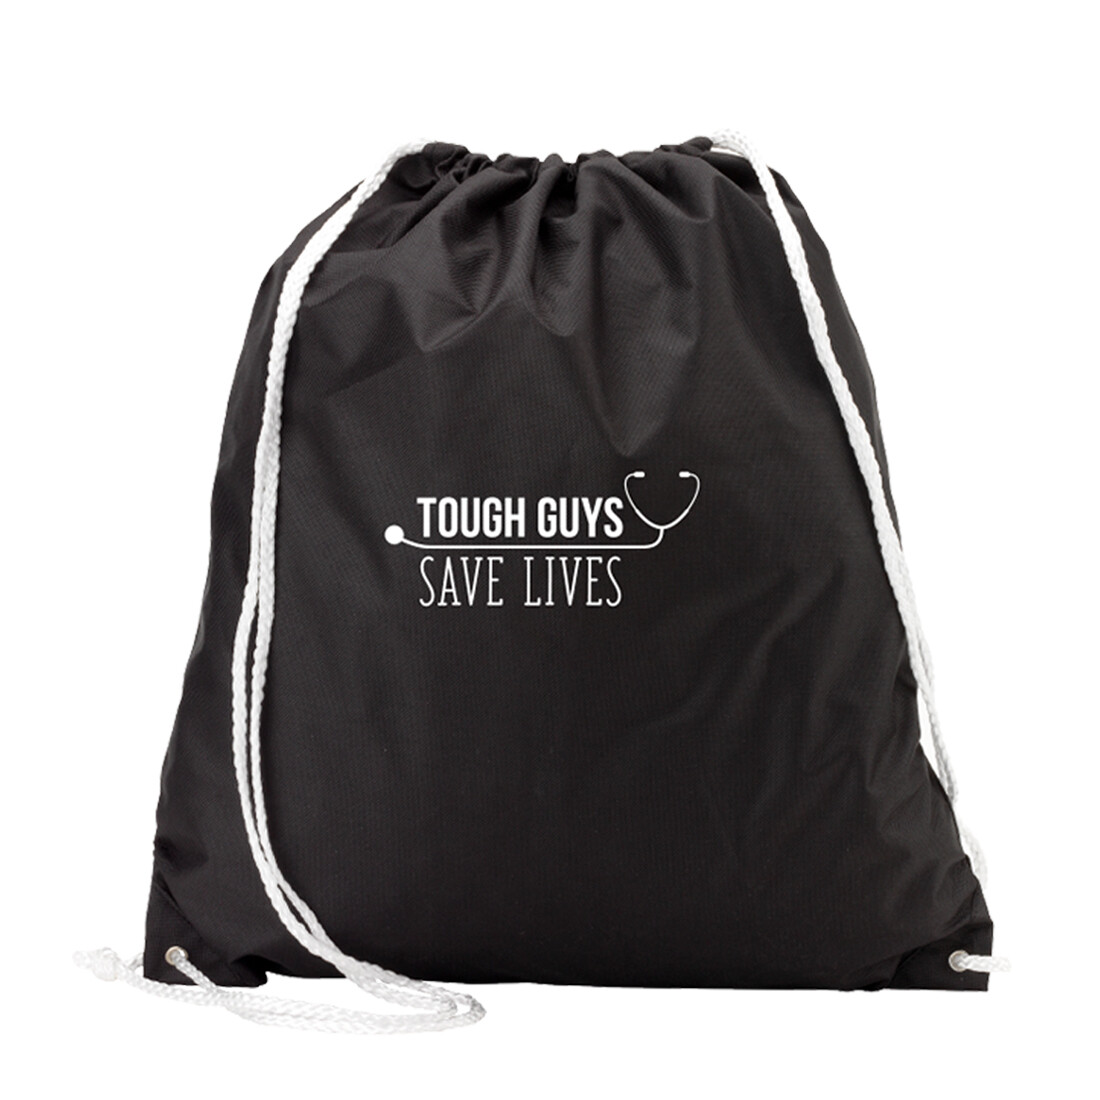 Tough Guys Save Lives Black Gym Bag